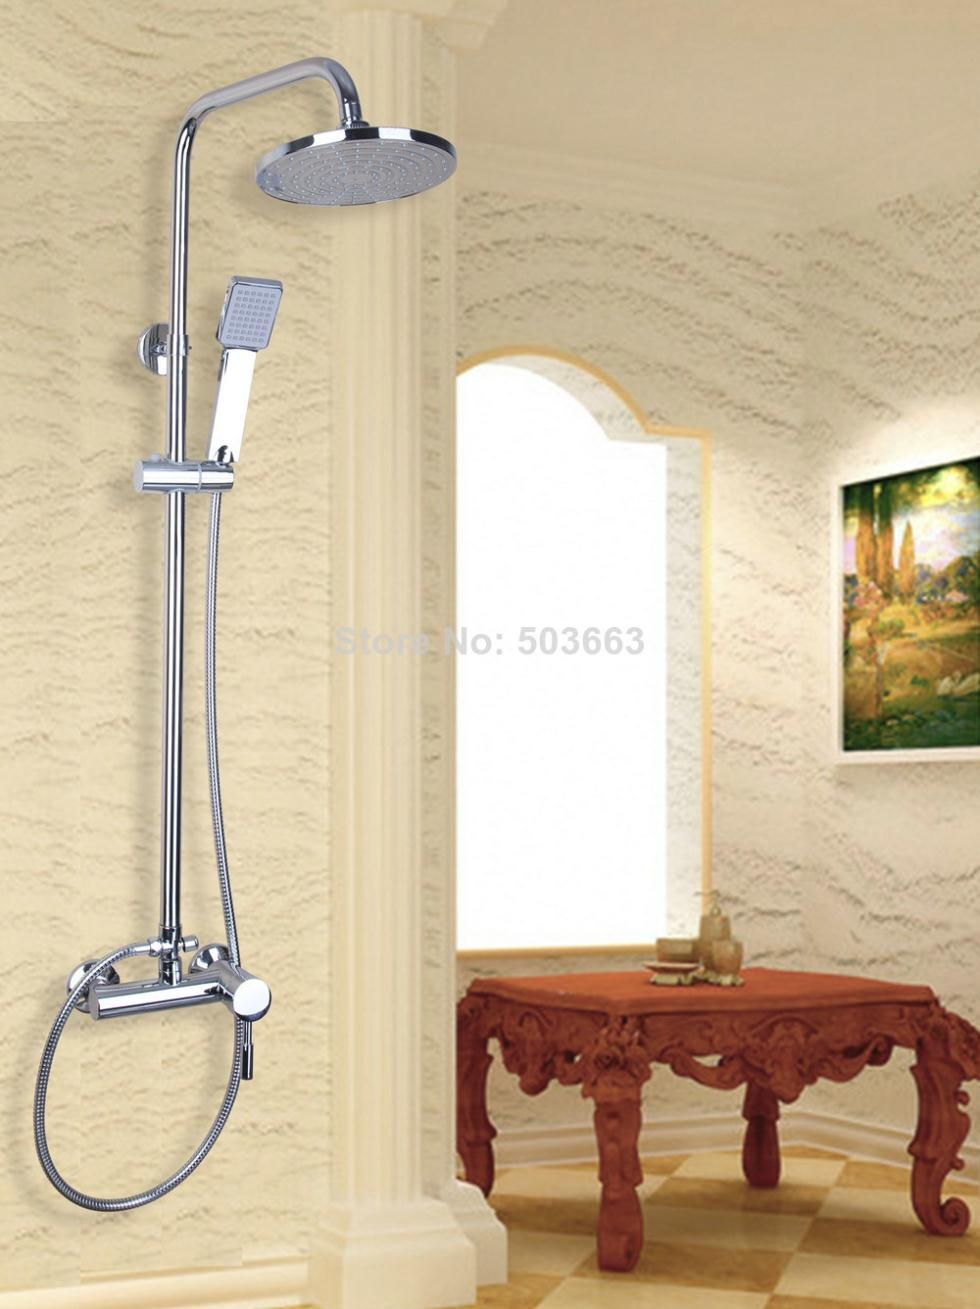 bathroom bath system faucets tropical product shower mixer with copper rack